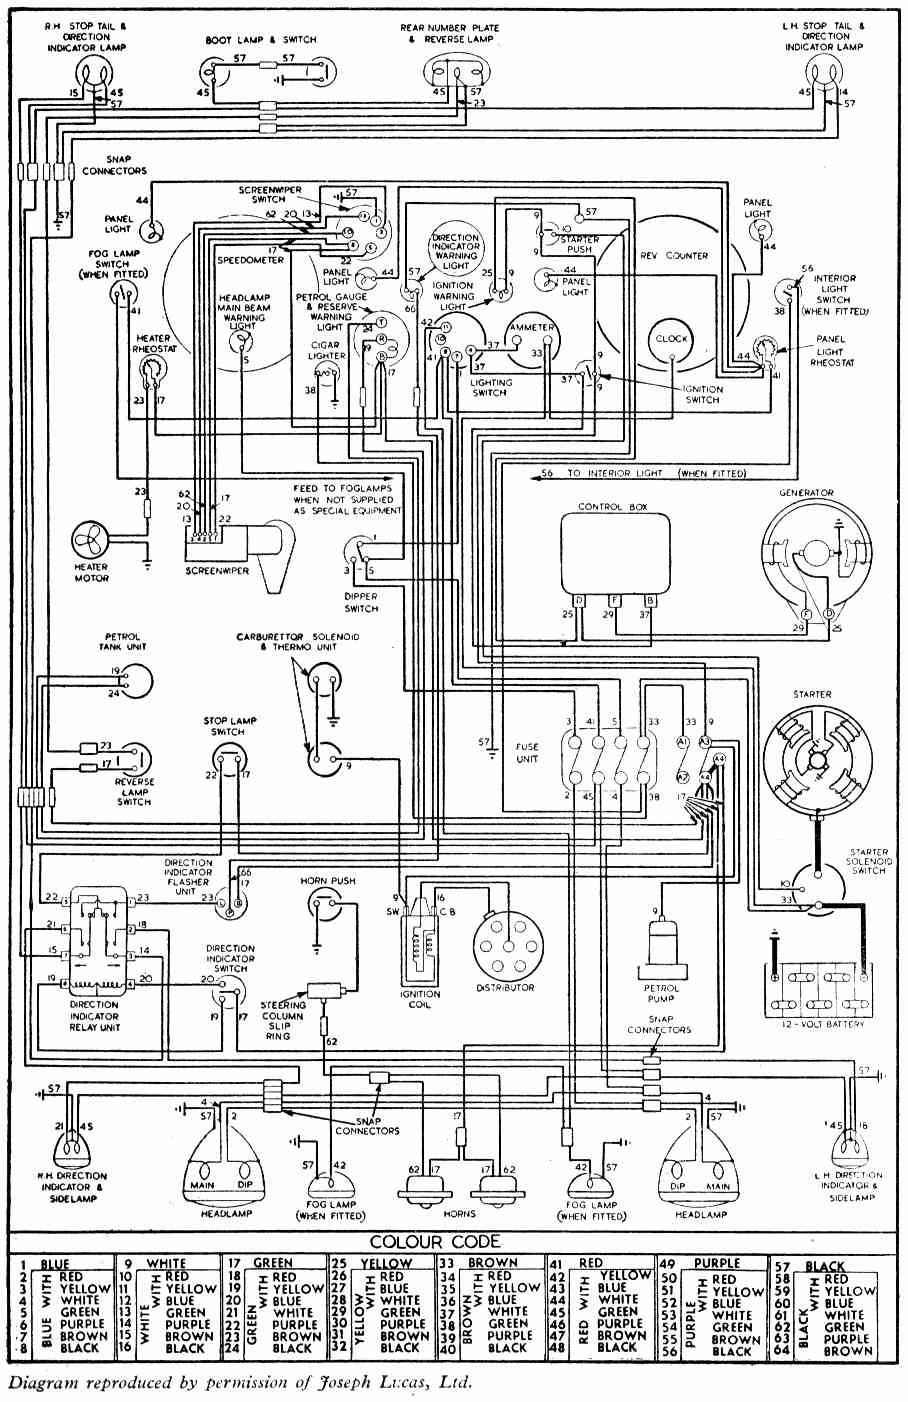 1954 jaguar xk120 wiring diagram